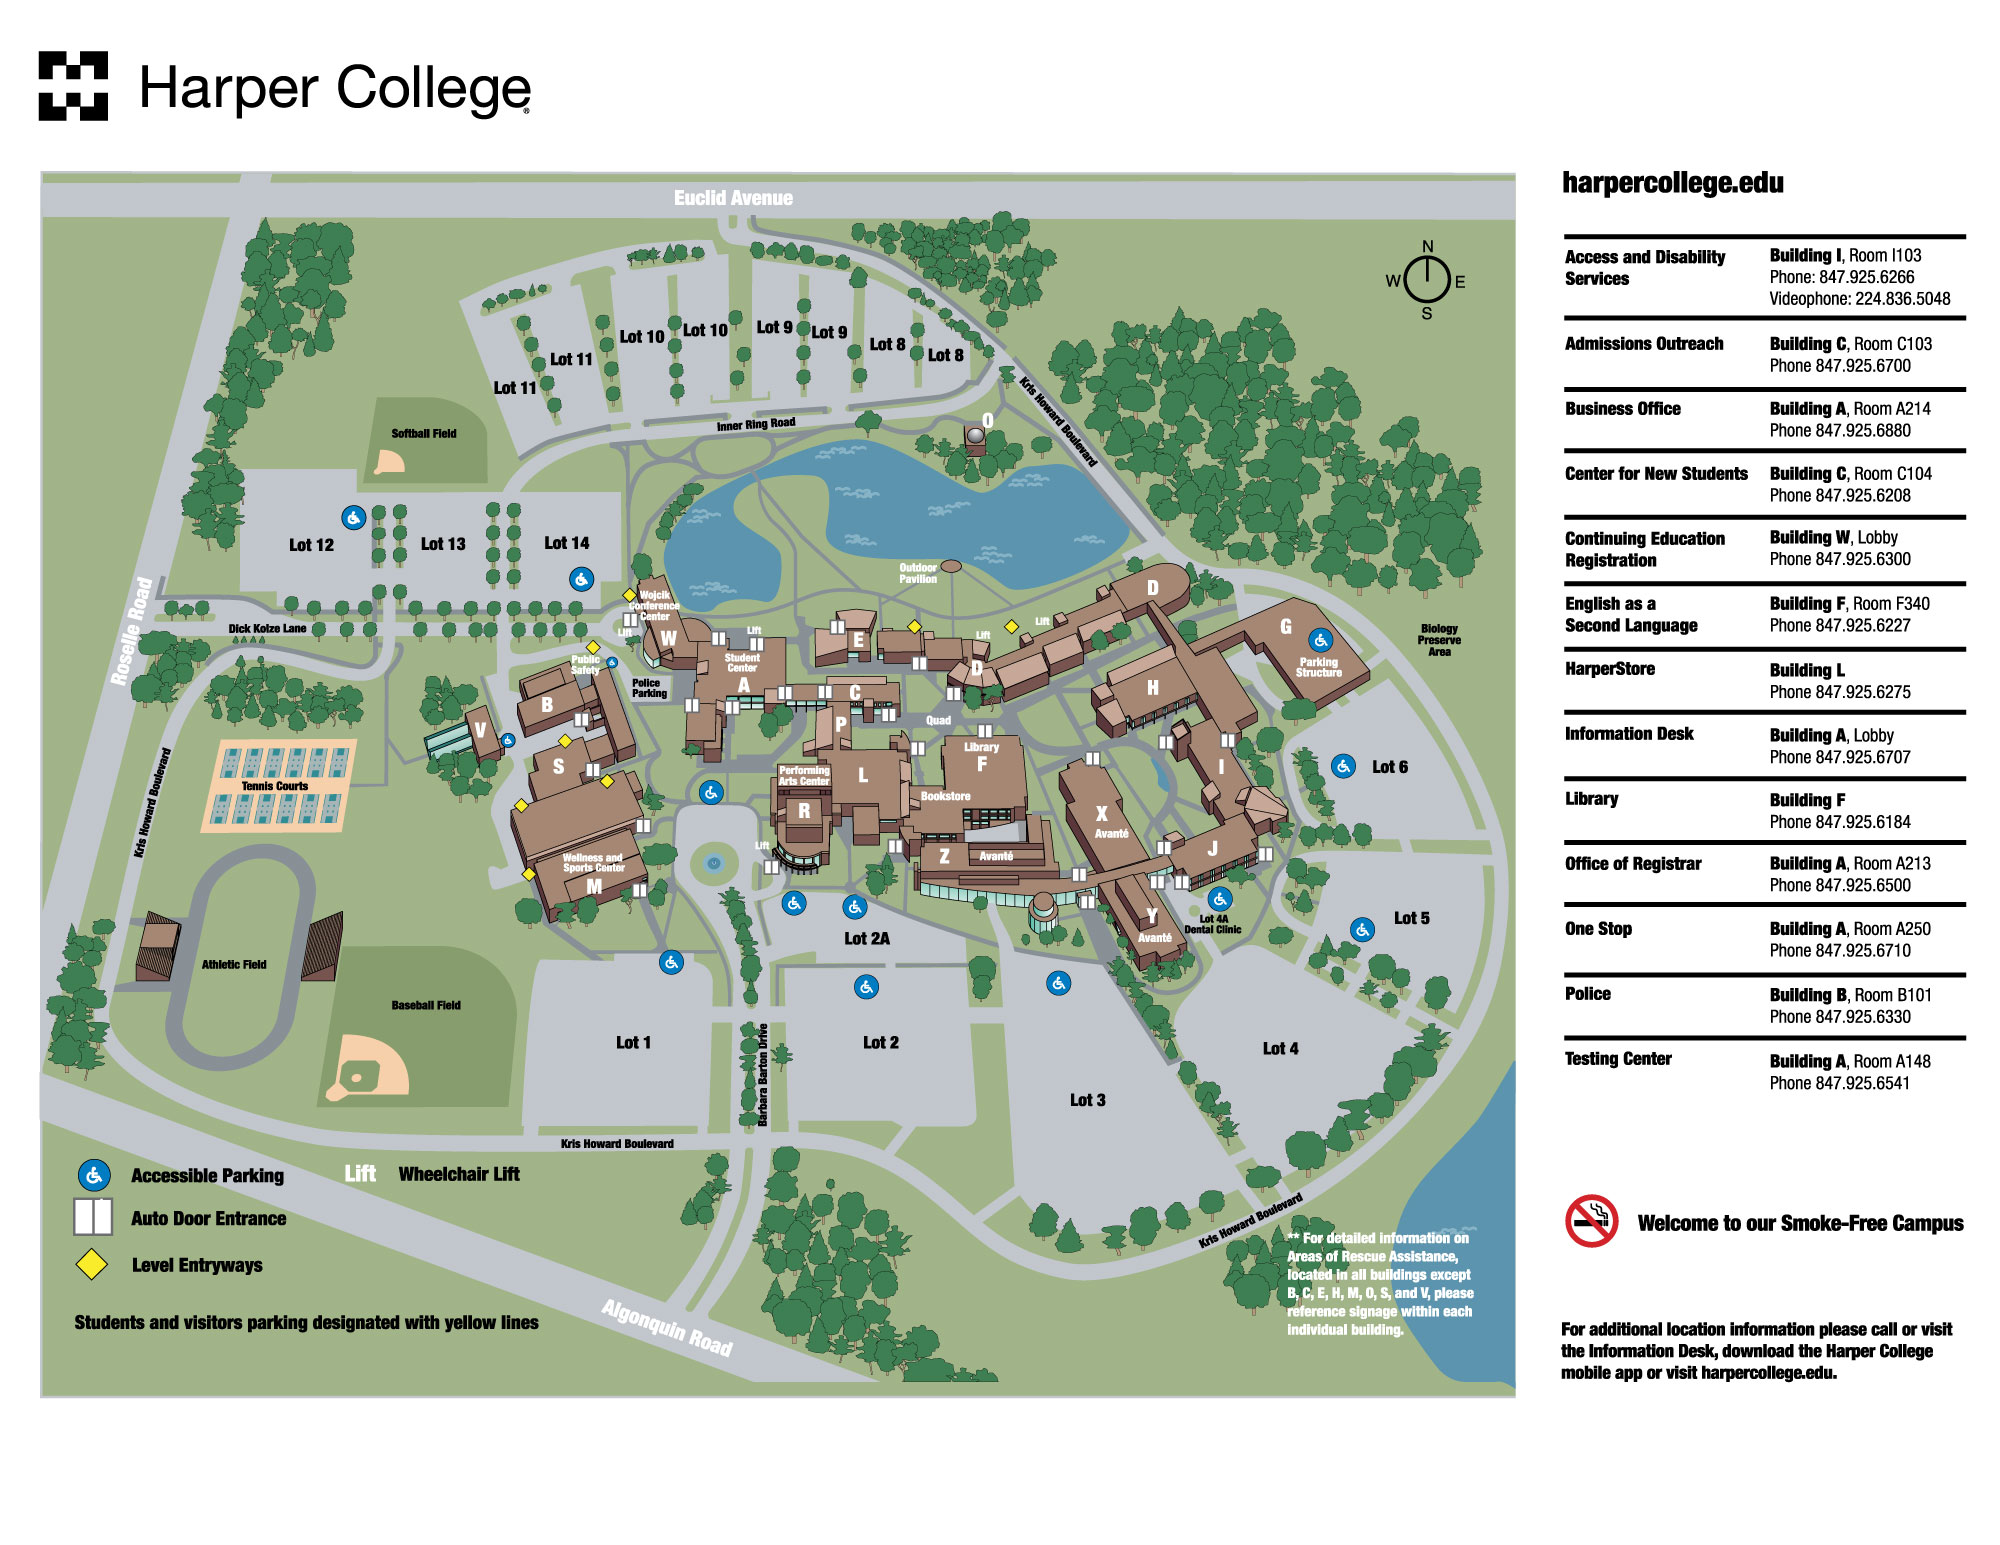 eventdetails - click here for harper college campus map